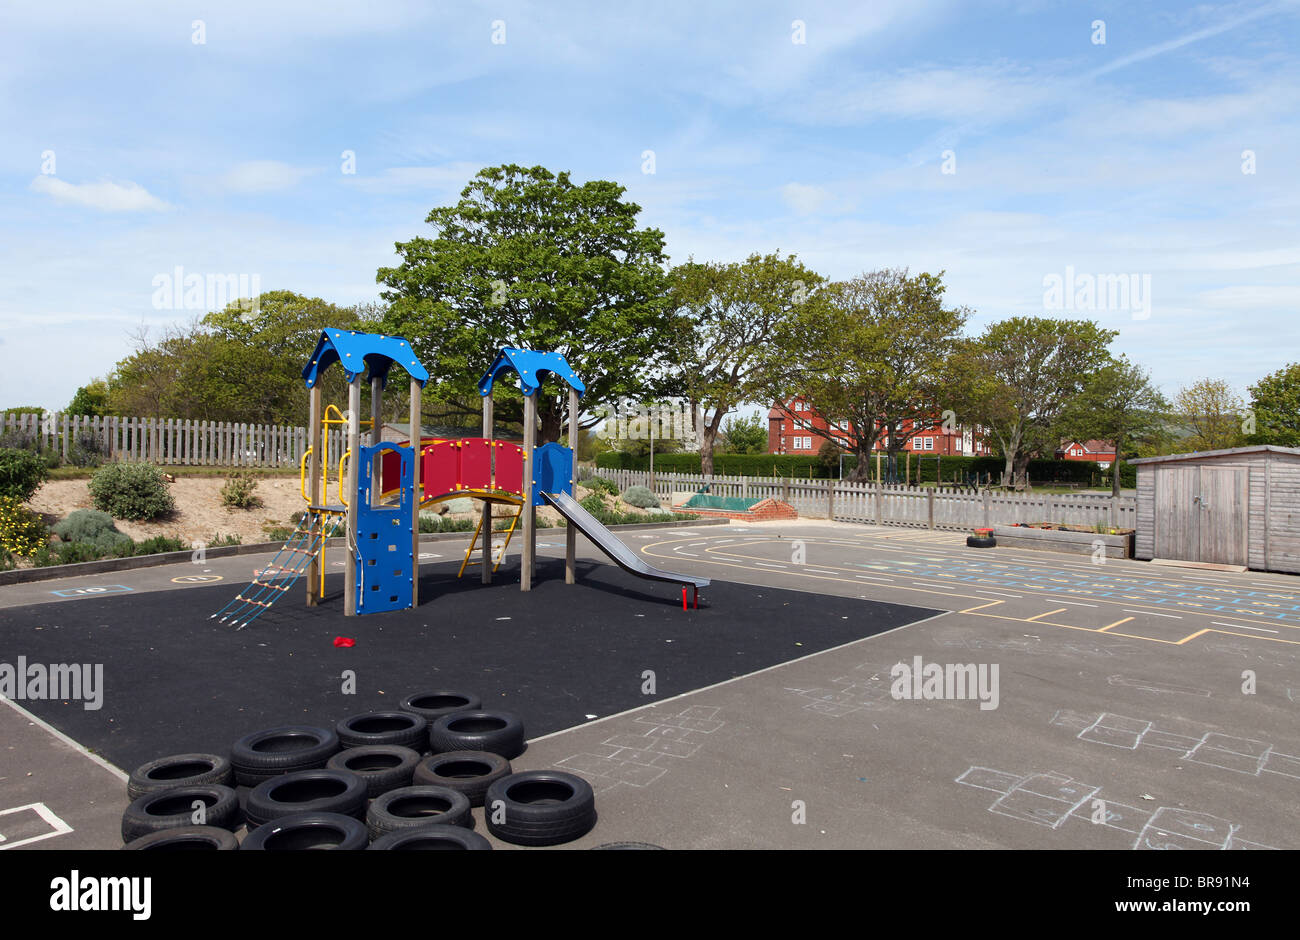 School yard playground at a UK infant/junior school ages 5 - 11 years - Stock Image